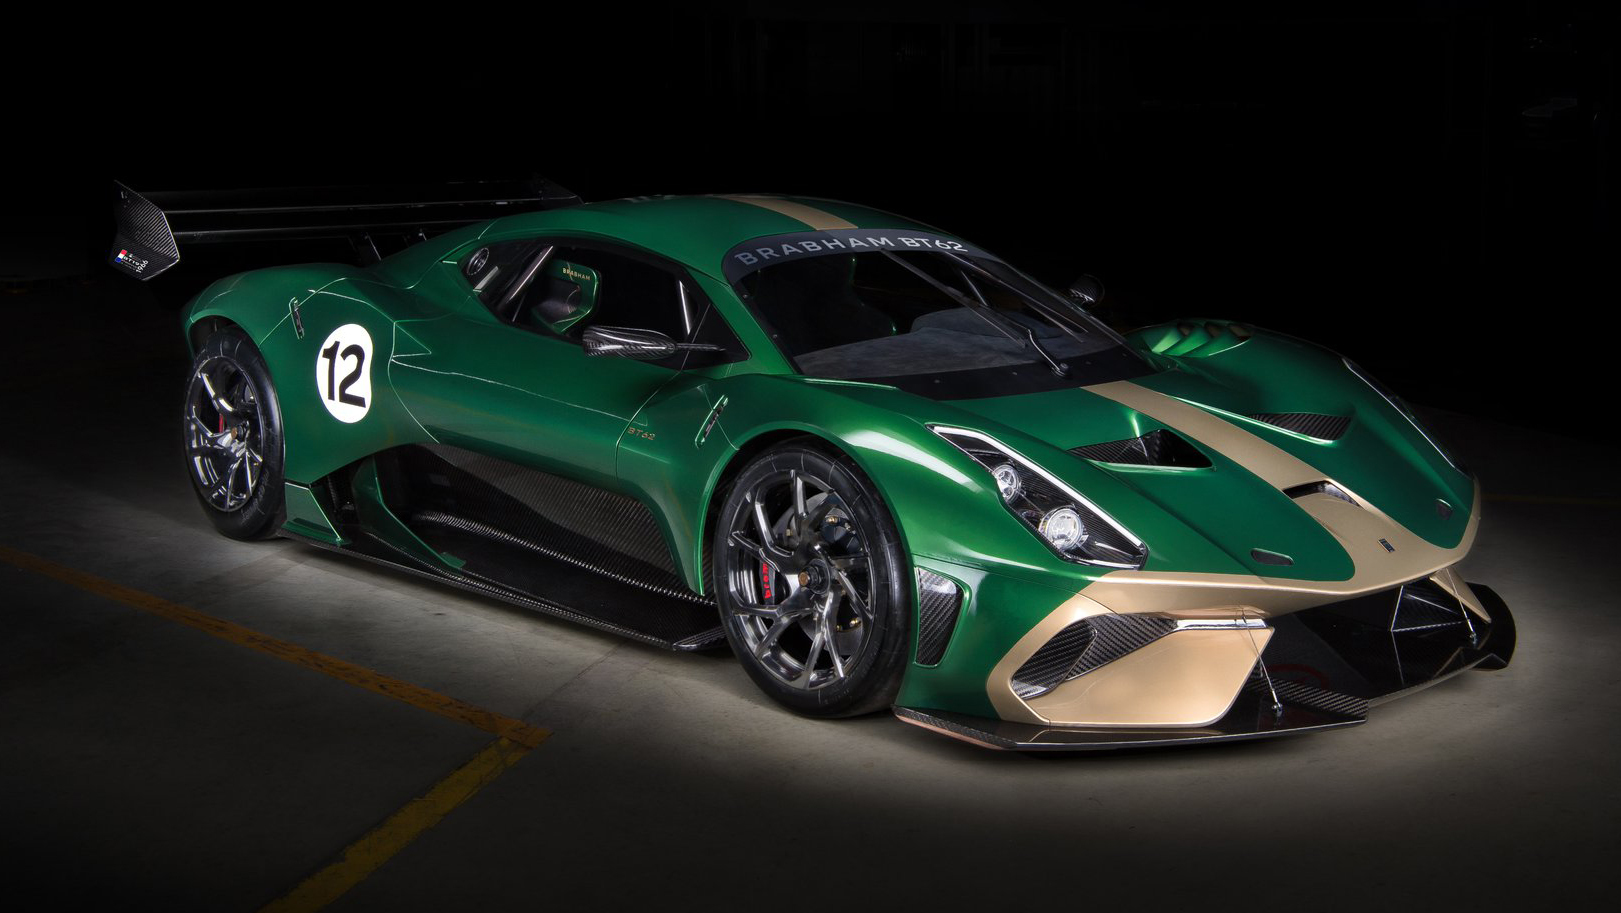 Brabham reveals £1 million track vehicle